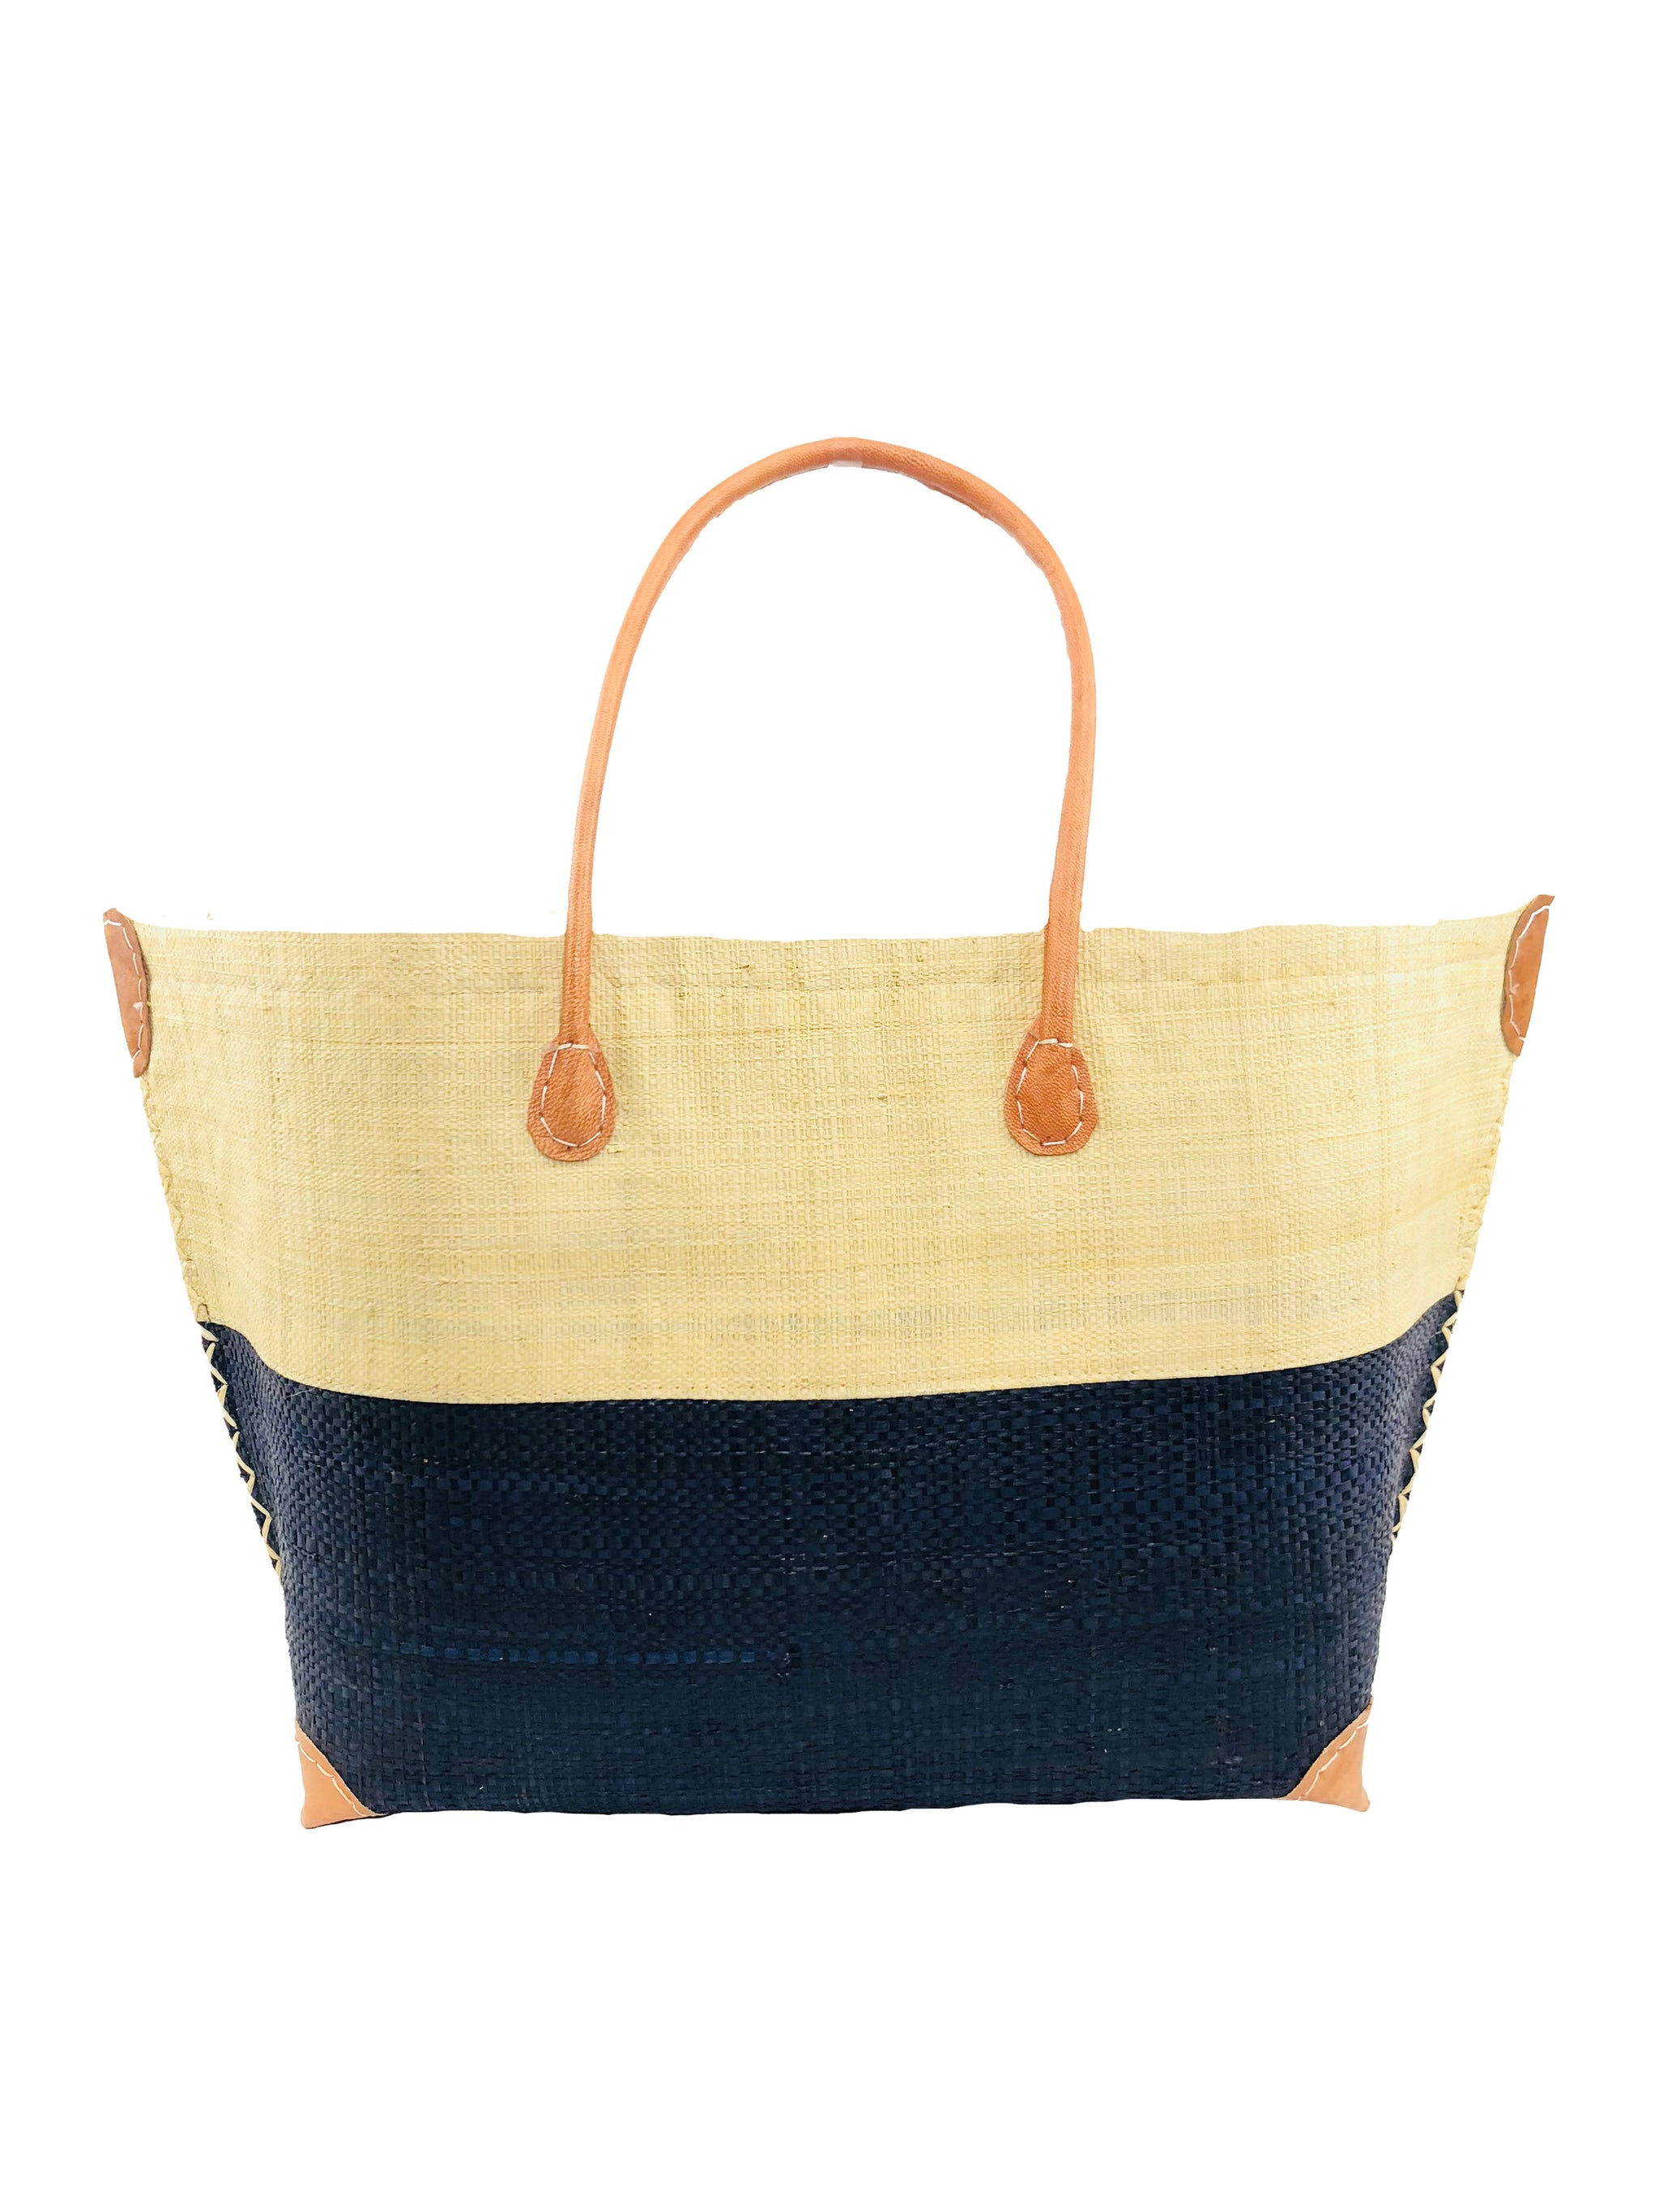 Monterey Straw Bag-Black and Natural